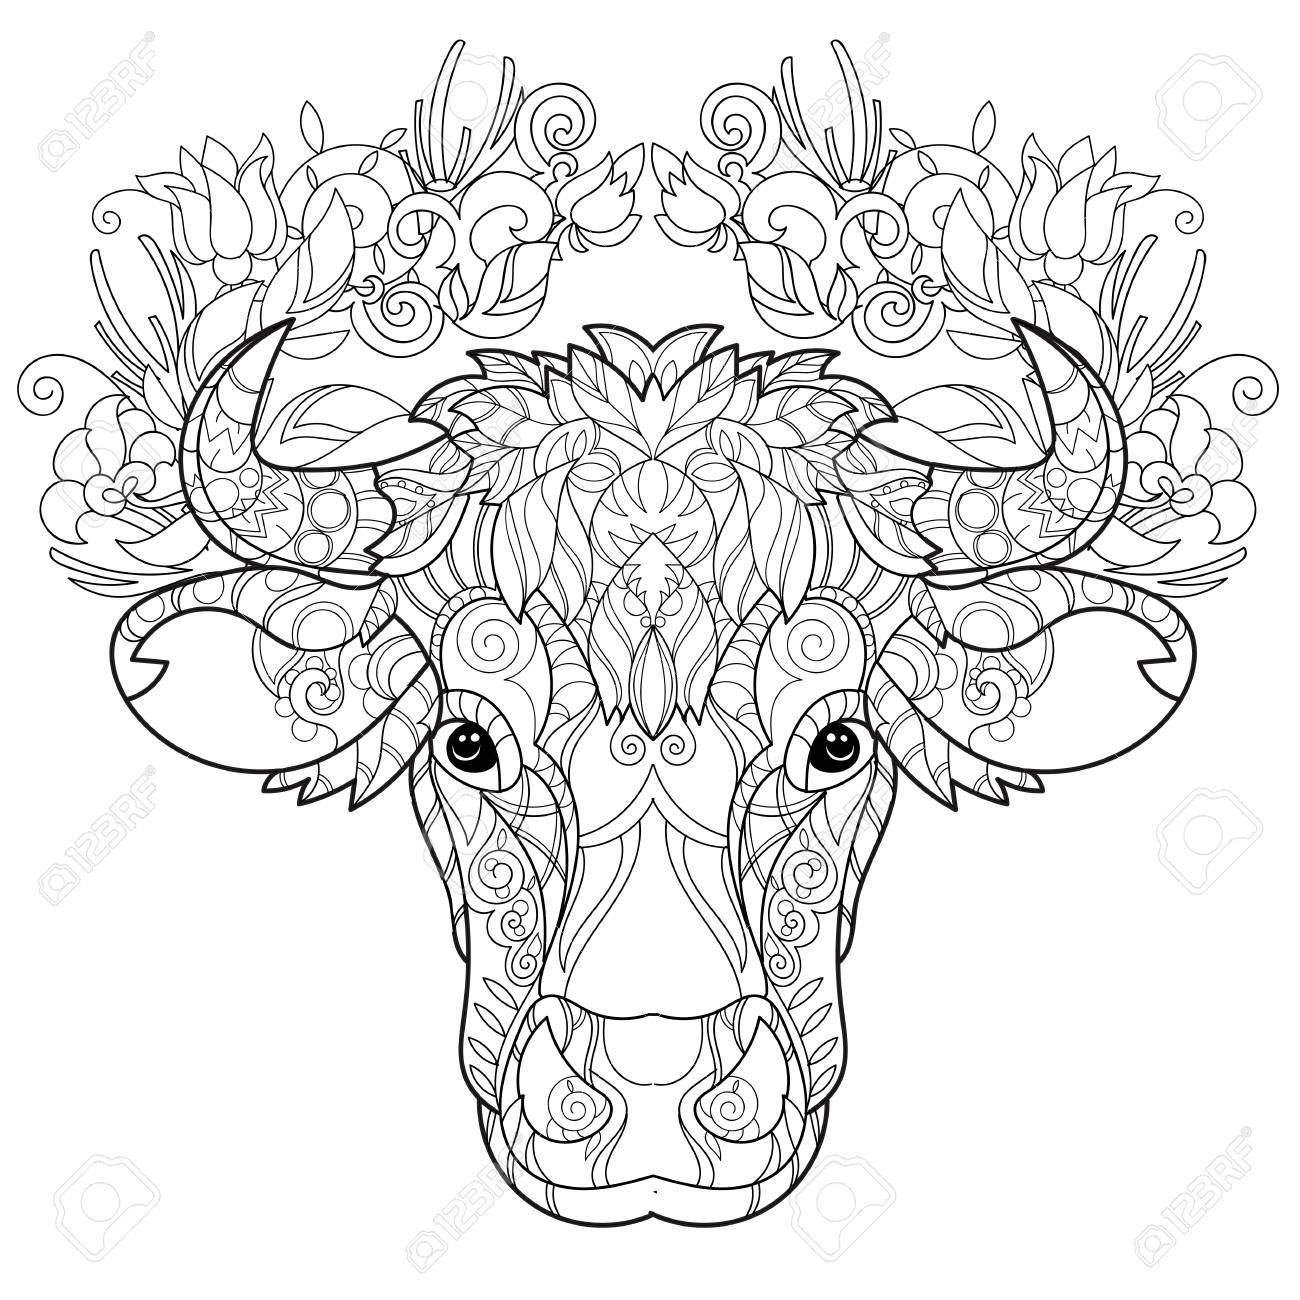 Hand Drawn Doodle Outline Cow Head Decorated With Ornaments.Vector ...